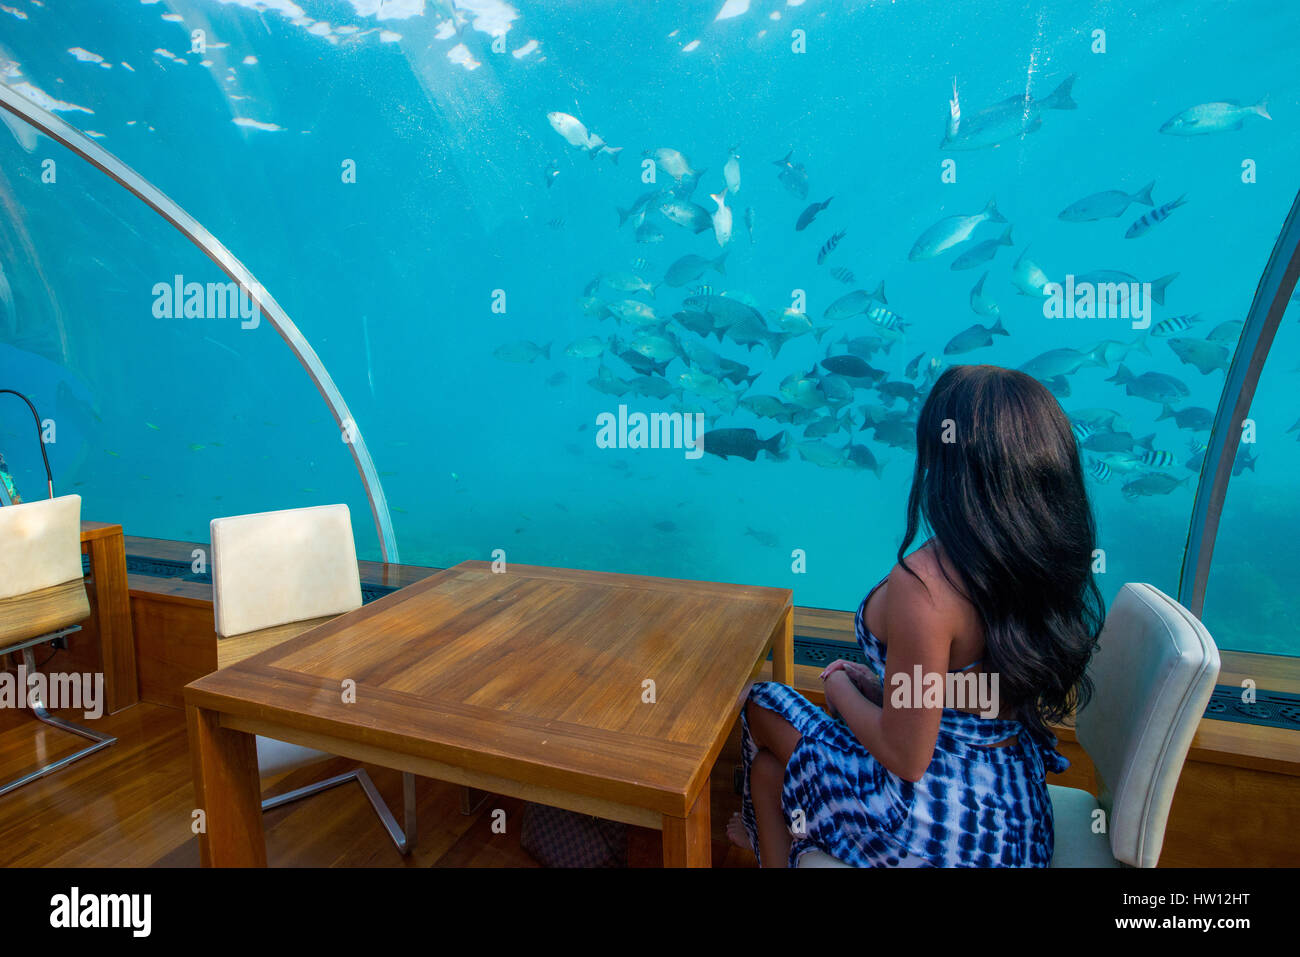 Underwater Hotel Stock Photos Underwater Hotel Stock Images Page